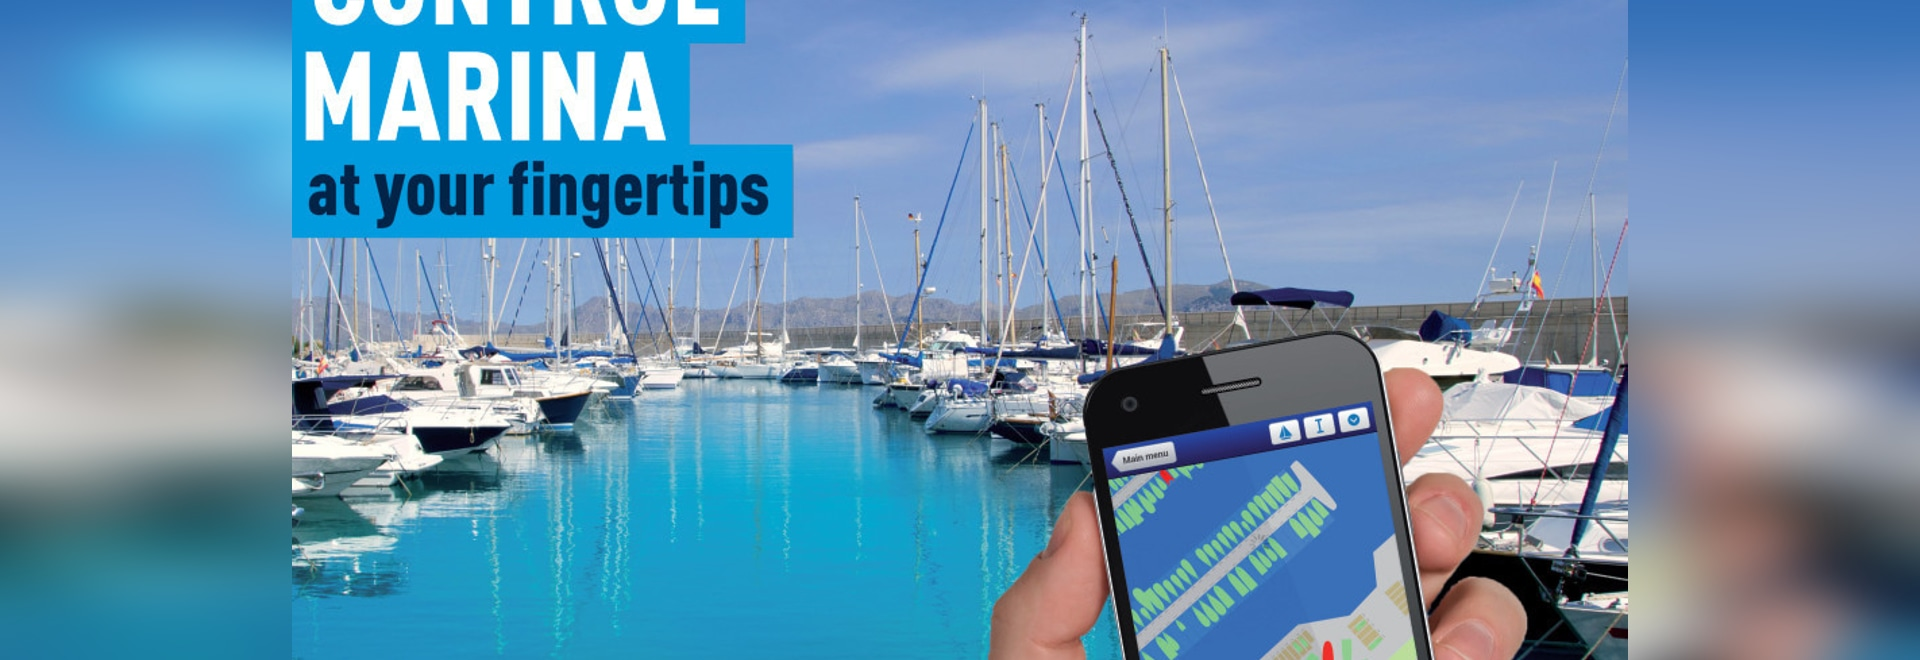 MARINA MASTER NOW OFFERS FREE APP DOWNLOAD